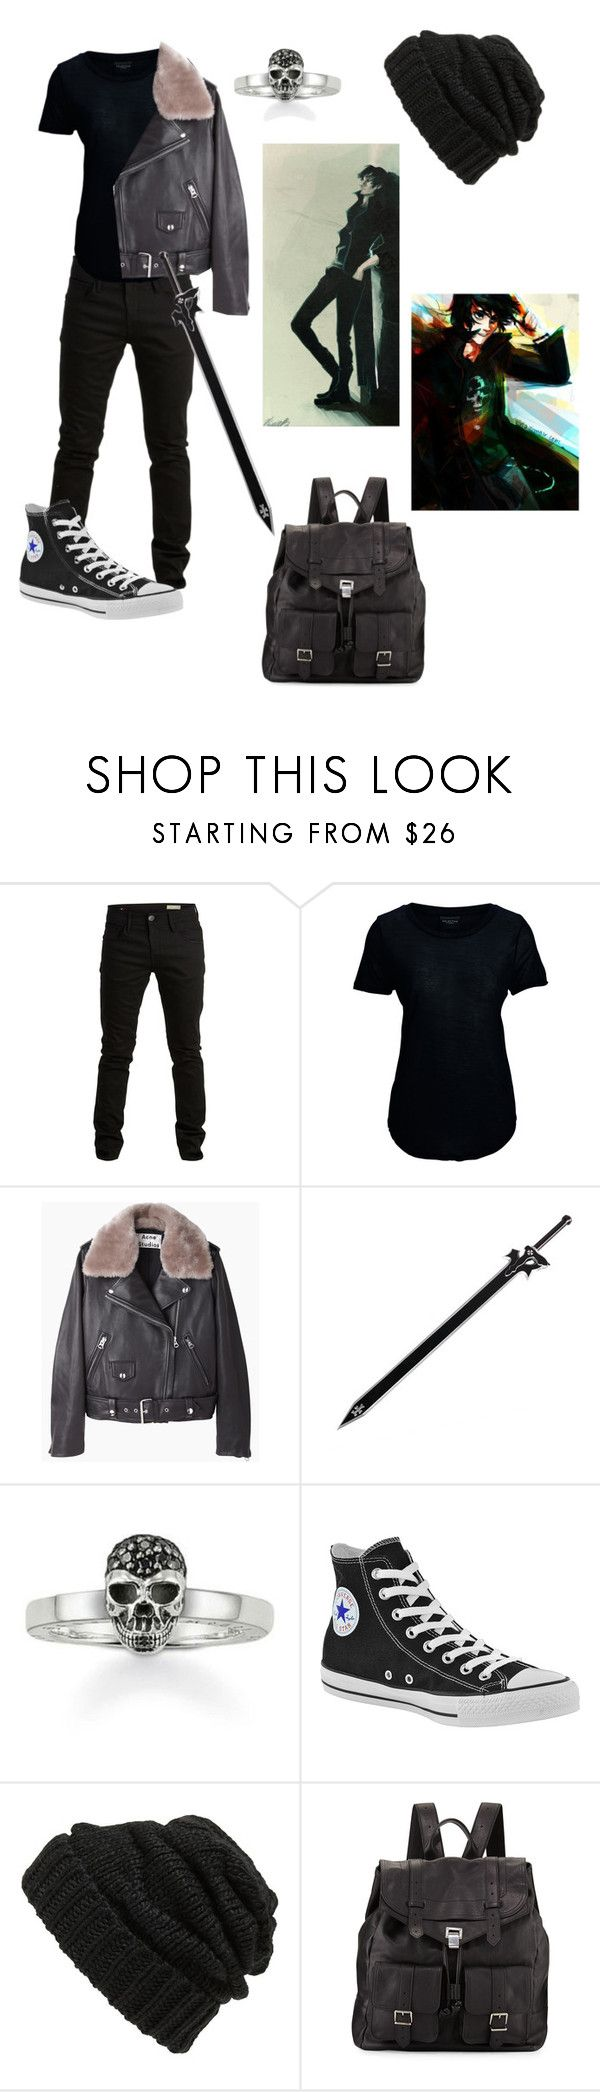 """Nico di angelo son of hades ❤️❤️❤️"" by gglloyd ❤ liked on Polyvore featuring SELECTED, Acne Studios, Kirito, Thomas Sabo, Converse, Leith and Proenza Schouler"